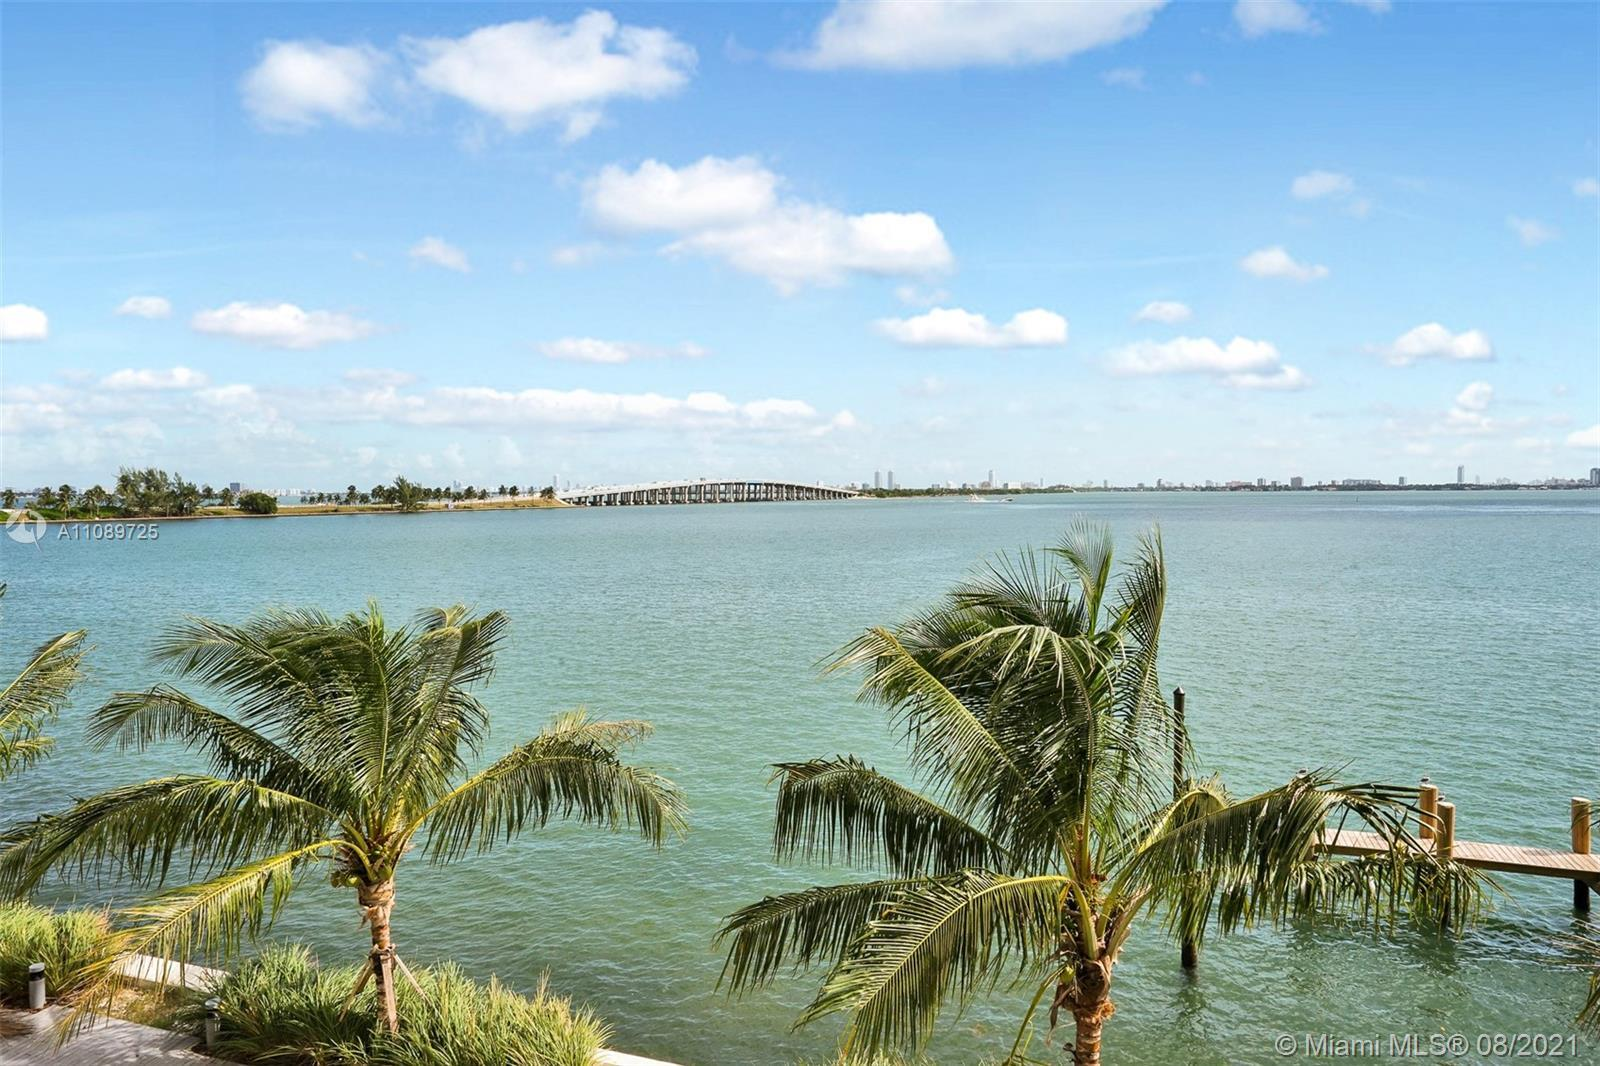 LOWEST PRICED 3 bdrm 3.5 bath condo at One Paraiso, located in the Heart of Edgewater. This gorgeous